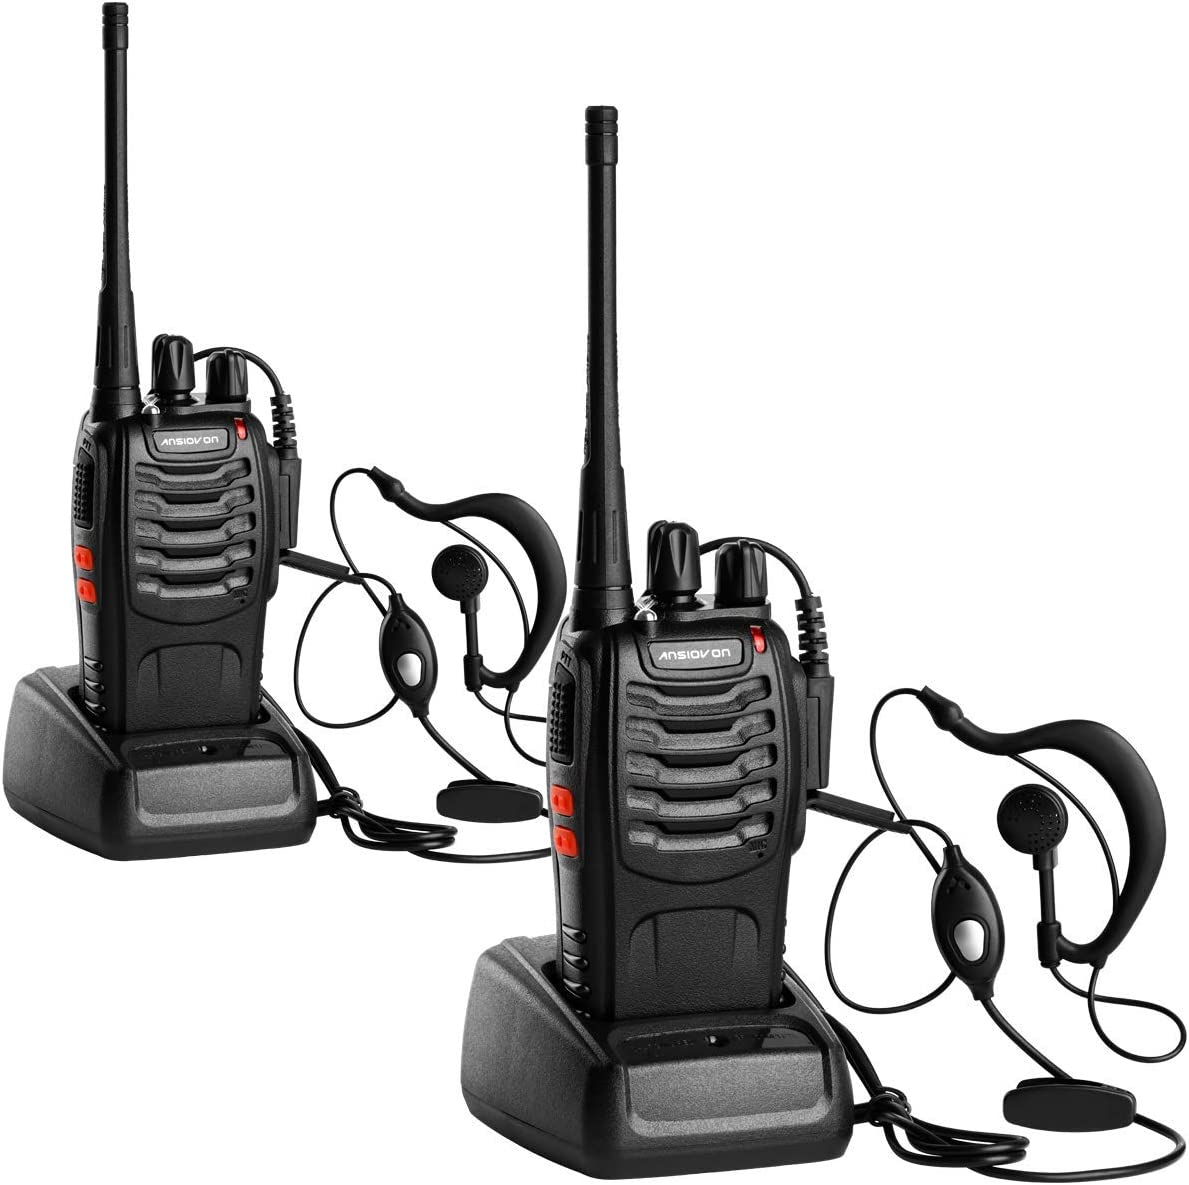 ANSIOVON Walkie Talkie-Rechargeable Long Range Two Way Radio-16 Channels-LED Flashlight -Earpiece-UHF 400-470Mhz-Professional Walky Talky-1500 Mah Rechargeable Li-ion Battery Include -2 Pack.